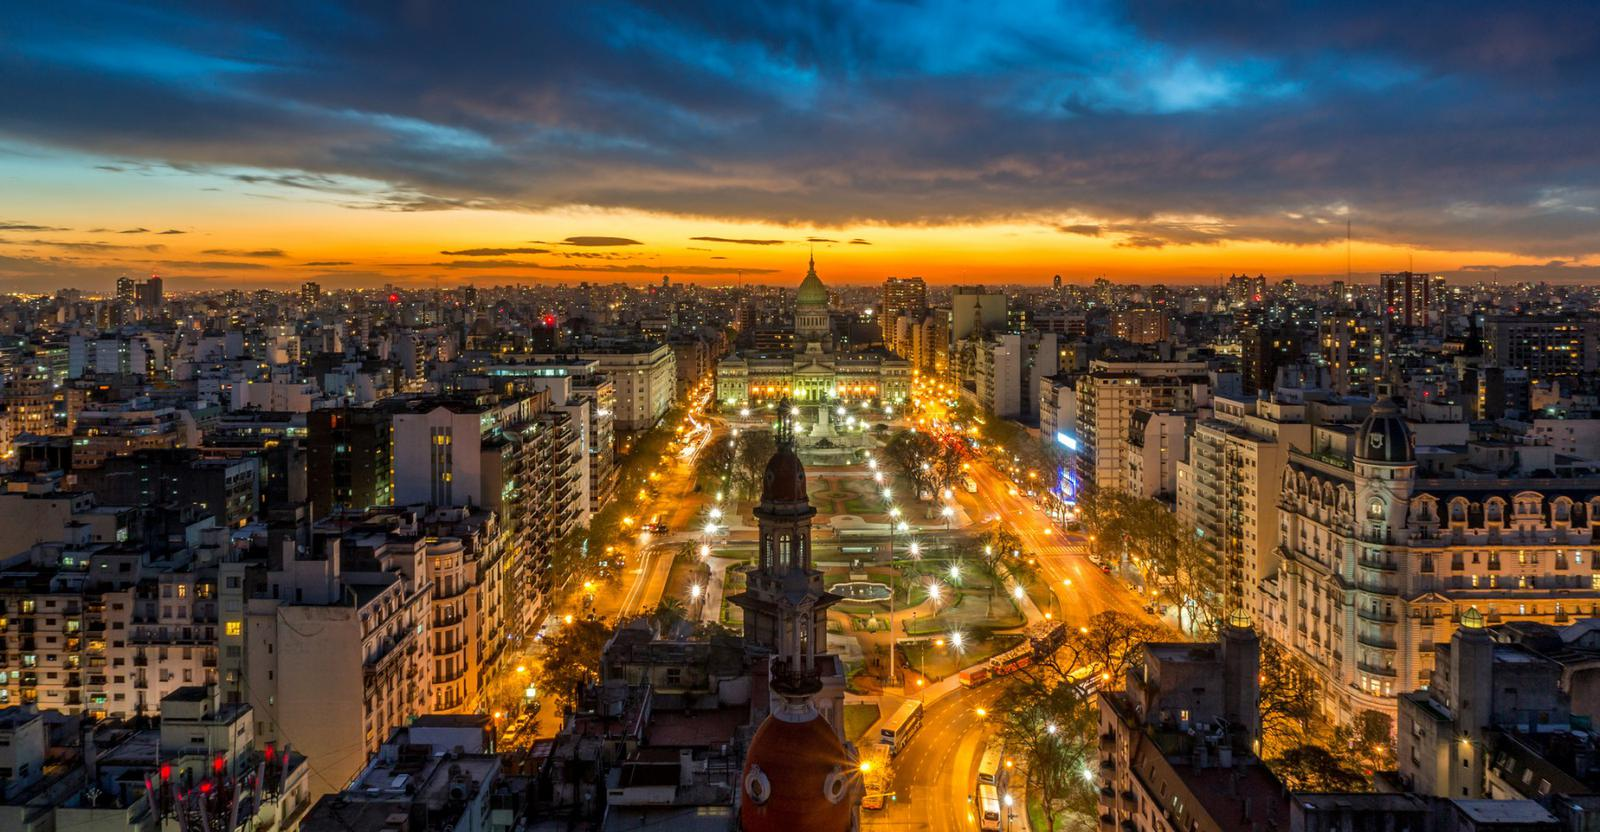 Buenos Aires lights at night